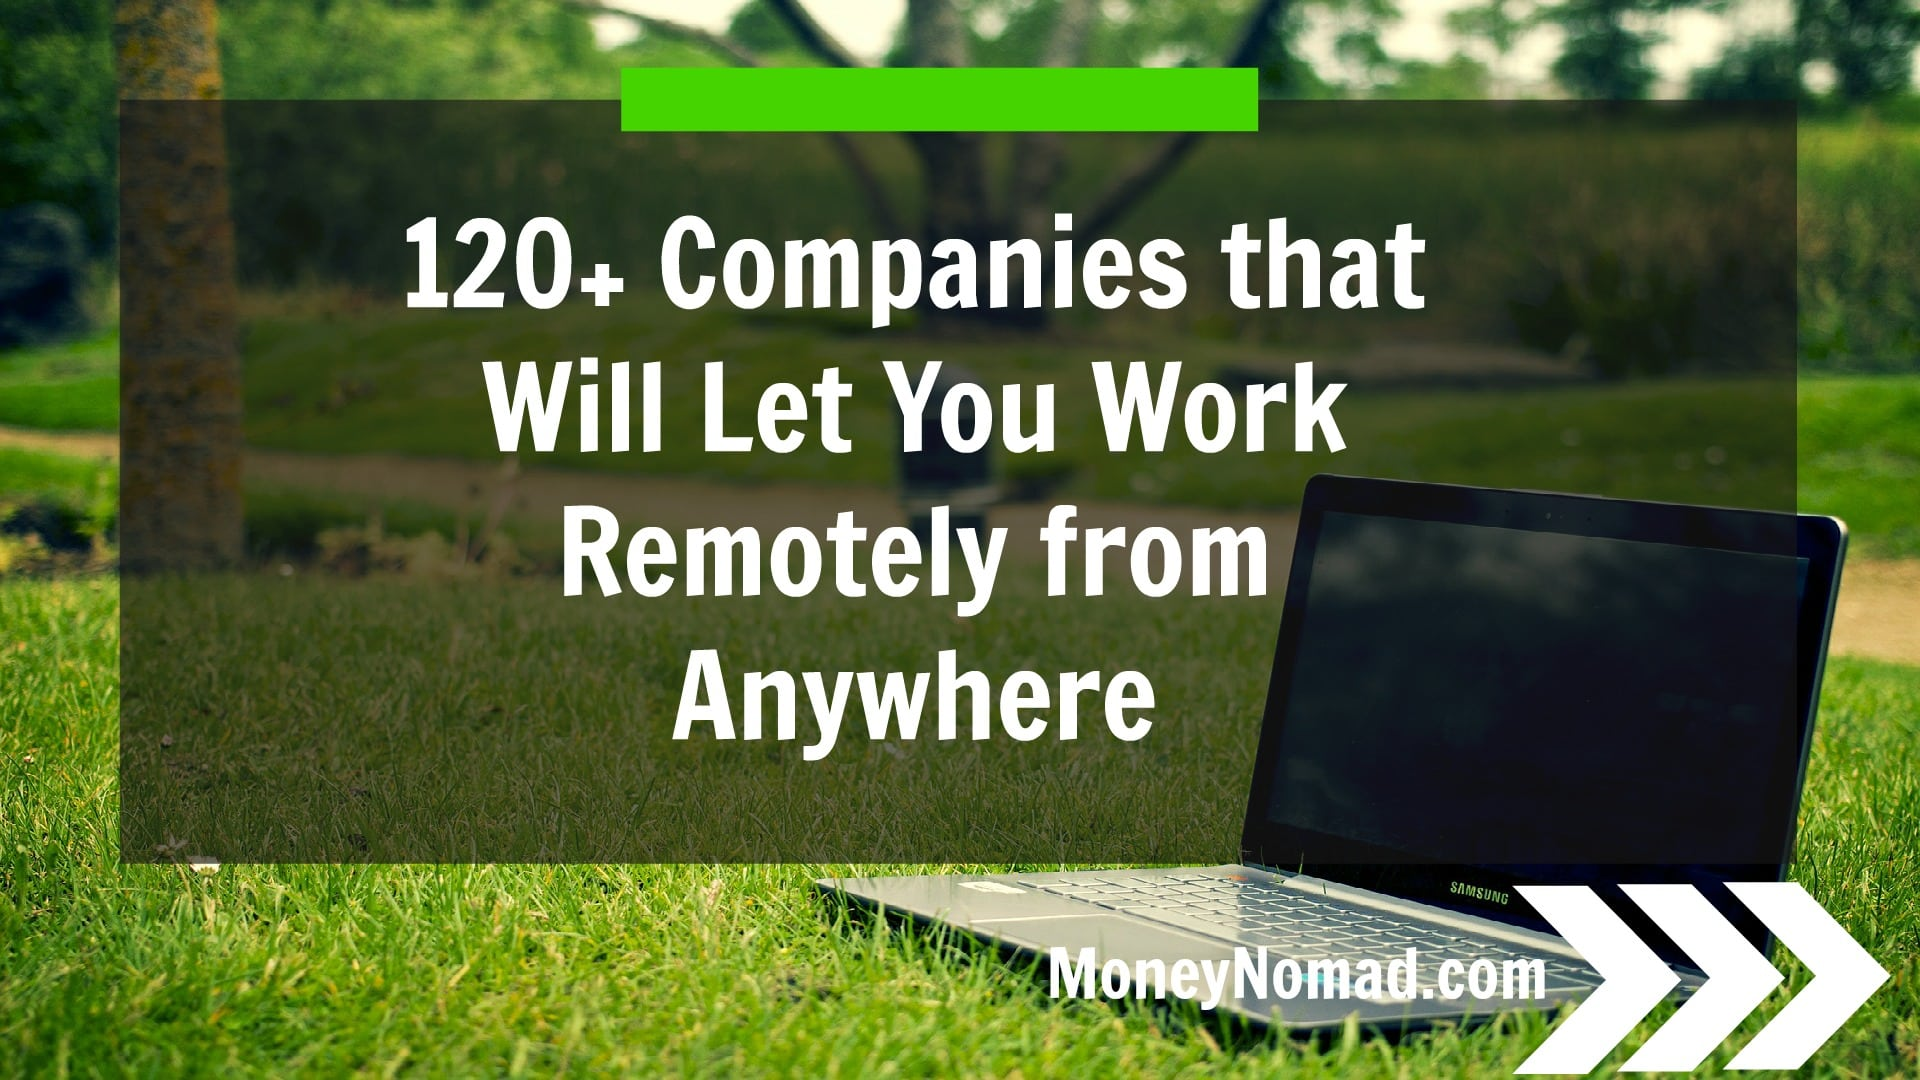 120+ Companies that Will Let You Work Remotely from Anywhere